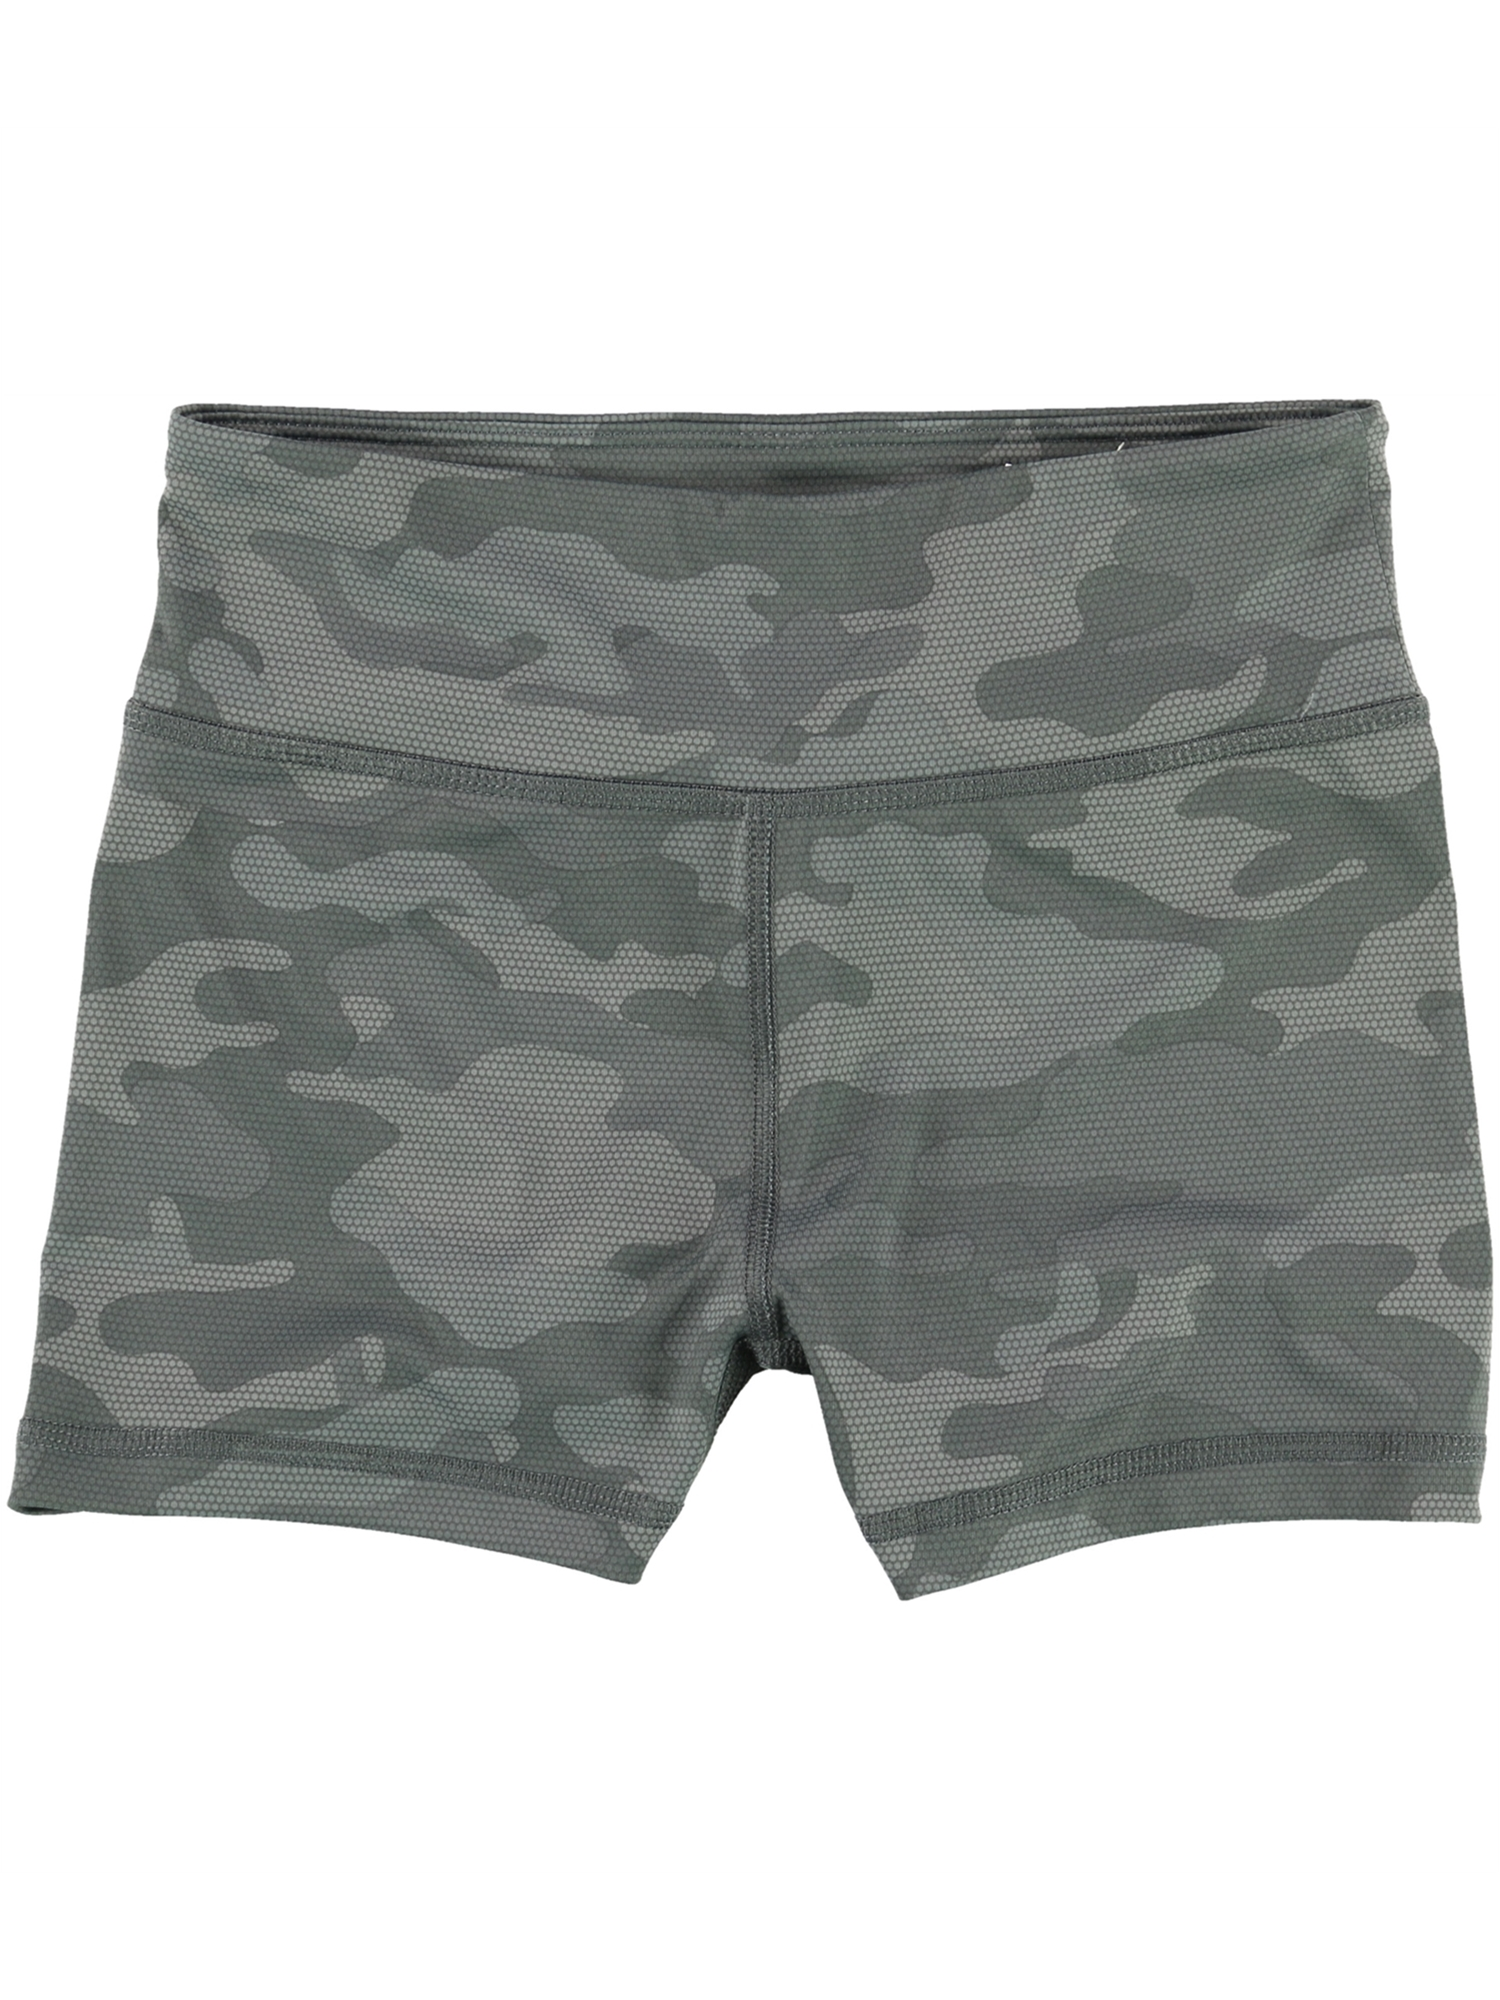 Aeropostale Juniors Vollyball Camo Athletic Compression Shorts 001 Xs - Juniors